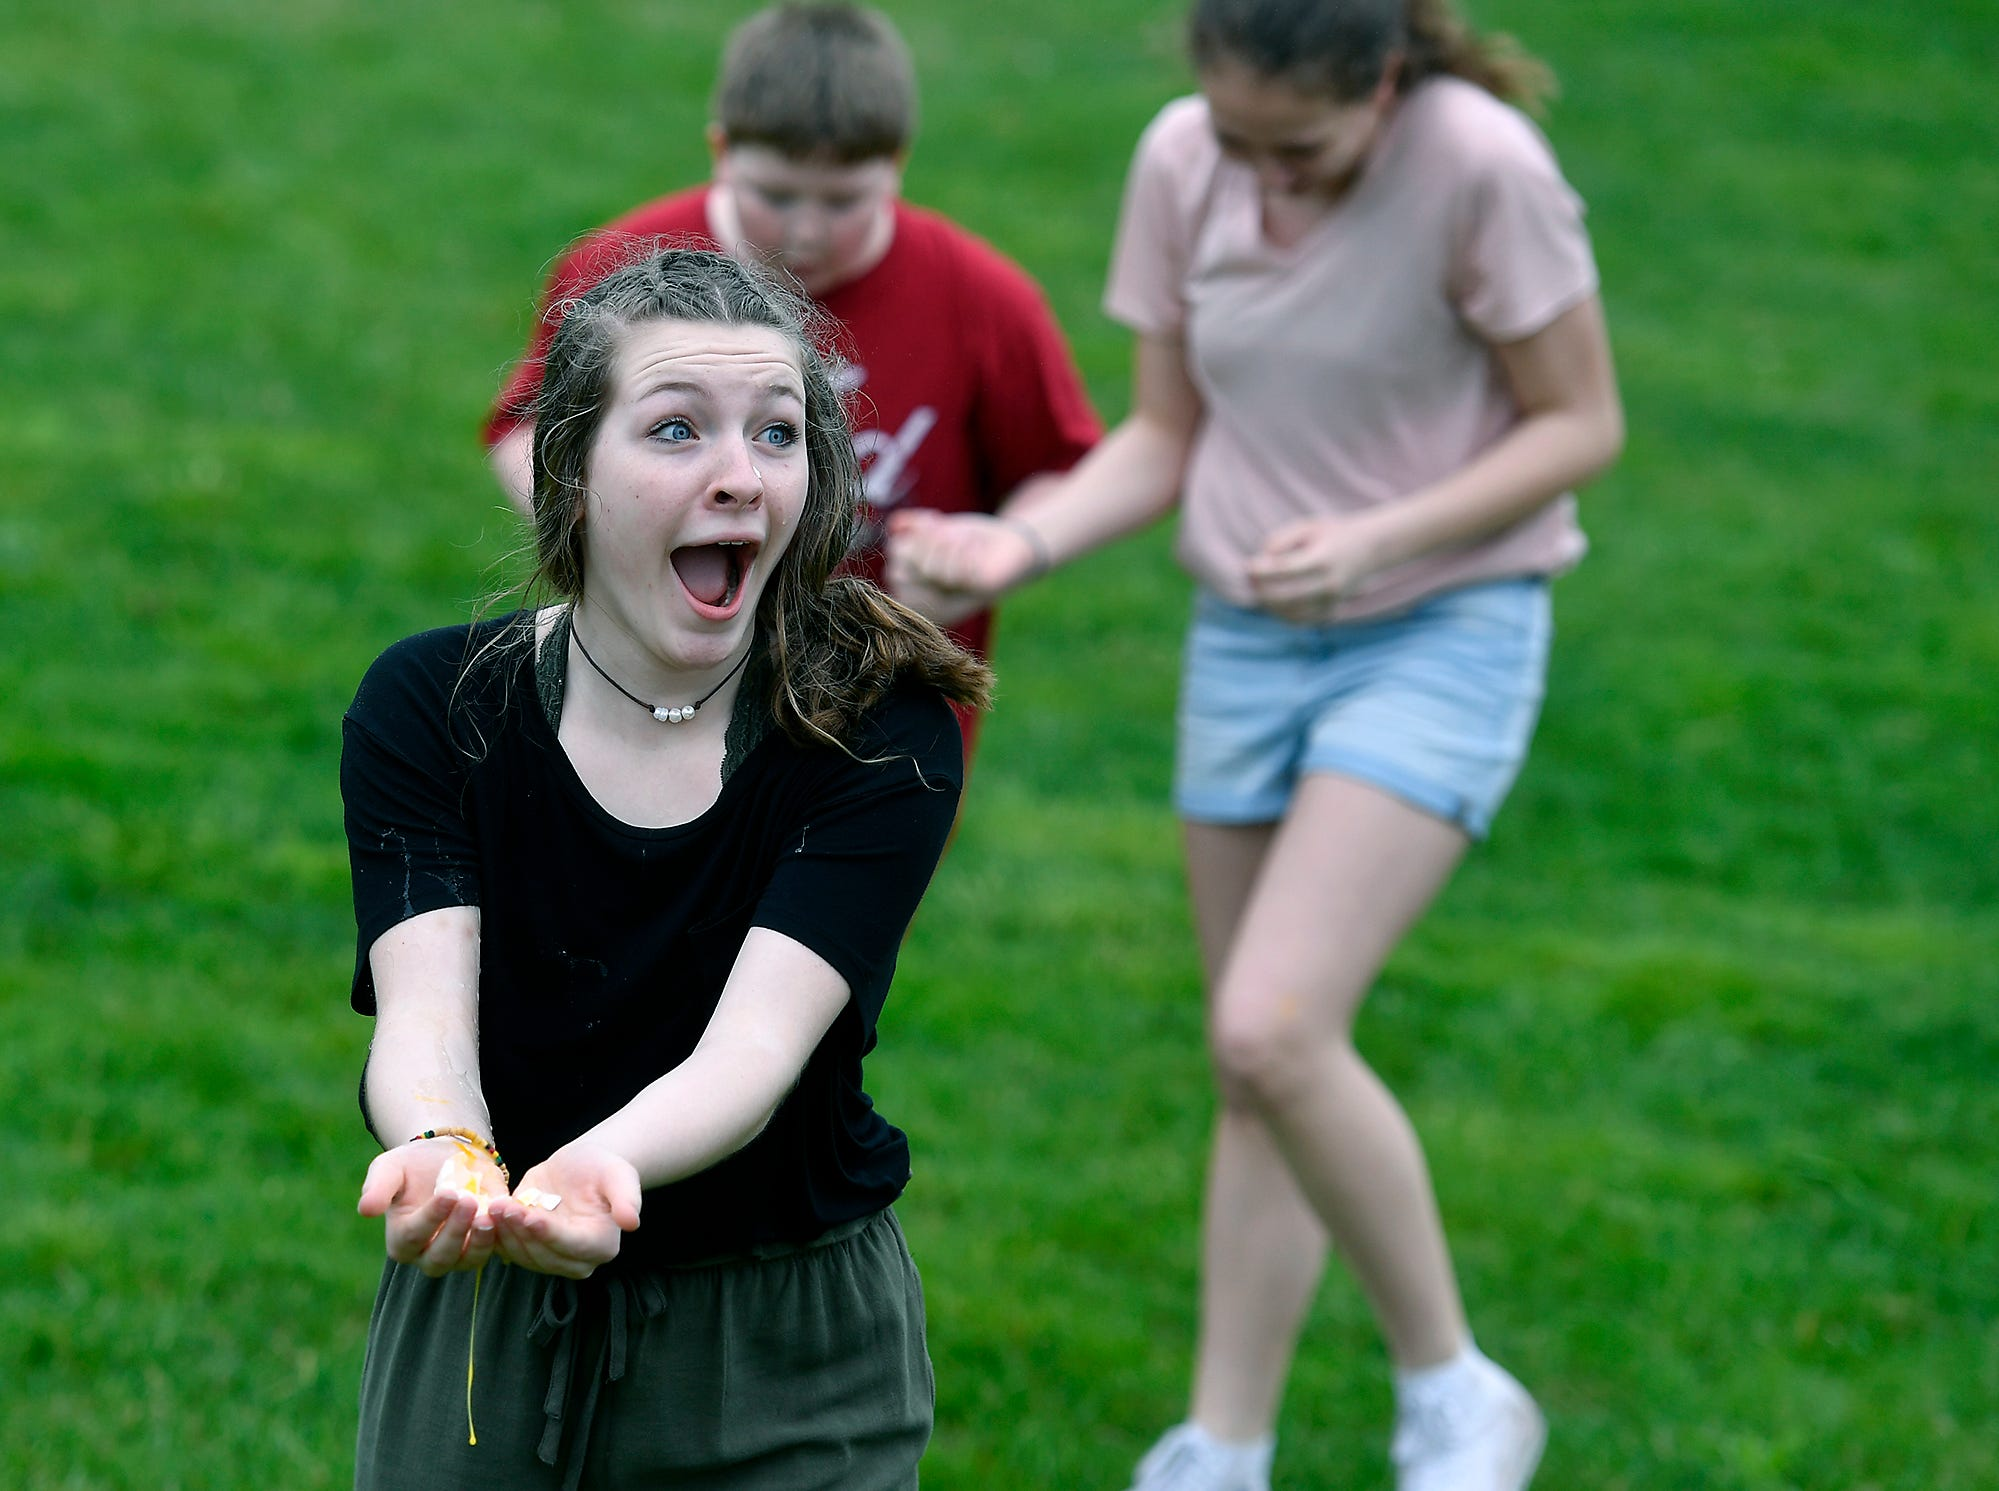 Presley Beal, 13, reacts as her egg shatters in her hands during an egg toss before the egg hunt at Genesis Church in Seven Valleys, Sunday, April 14, 2019.John A. Pavoncello photo